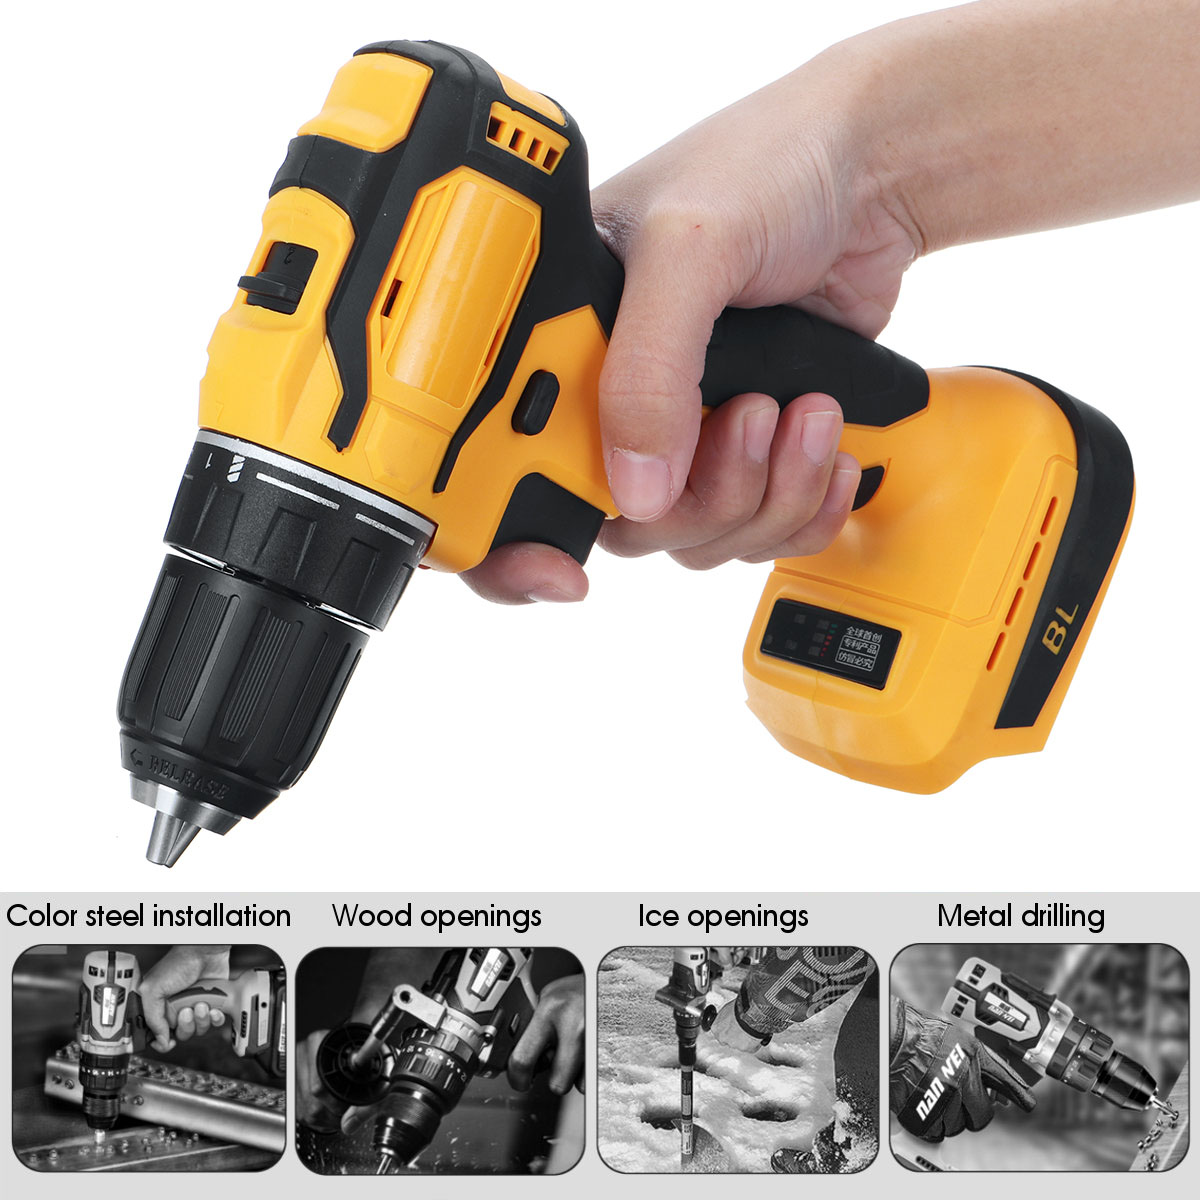 Brushless In Drill 1 Cordless For Hammer Torque 3 Electric Electric Drill 10mm Battery Screwdriver Impact 18V Makita